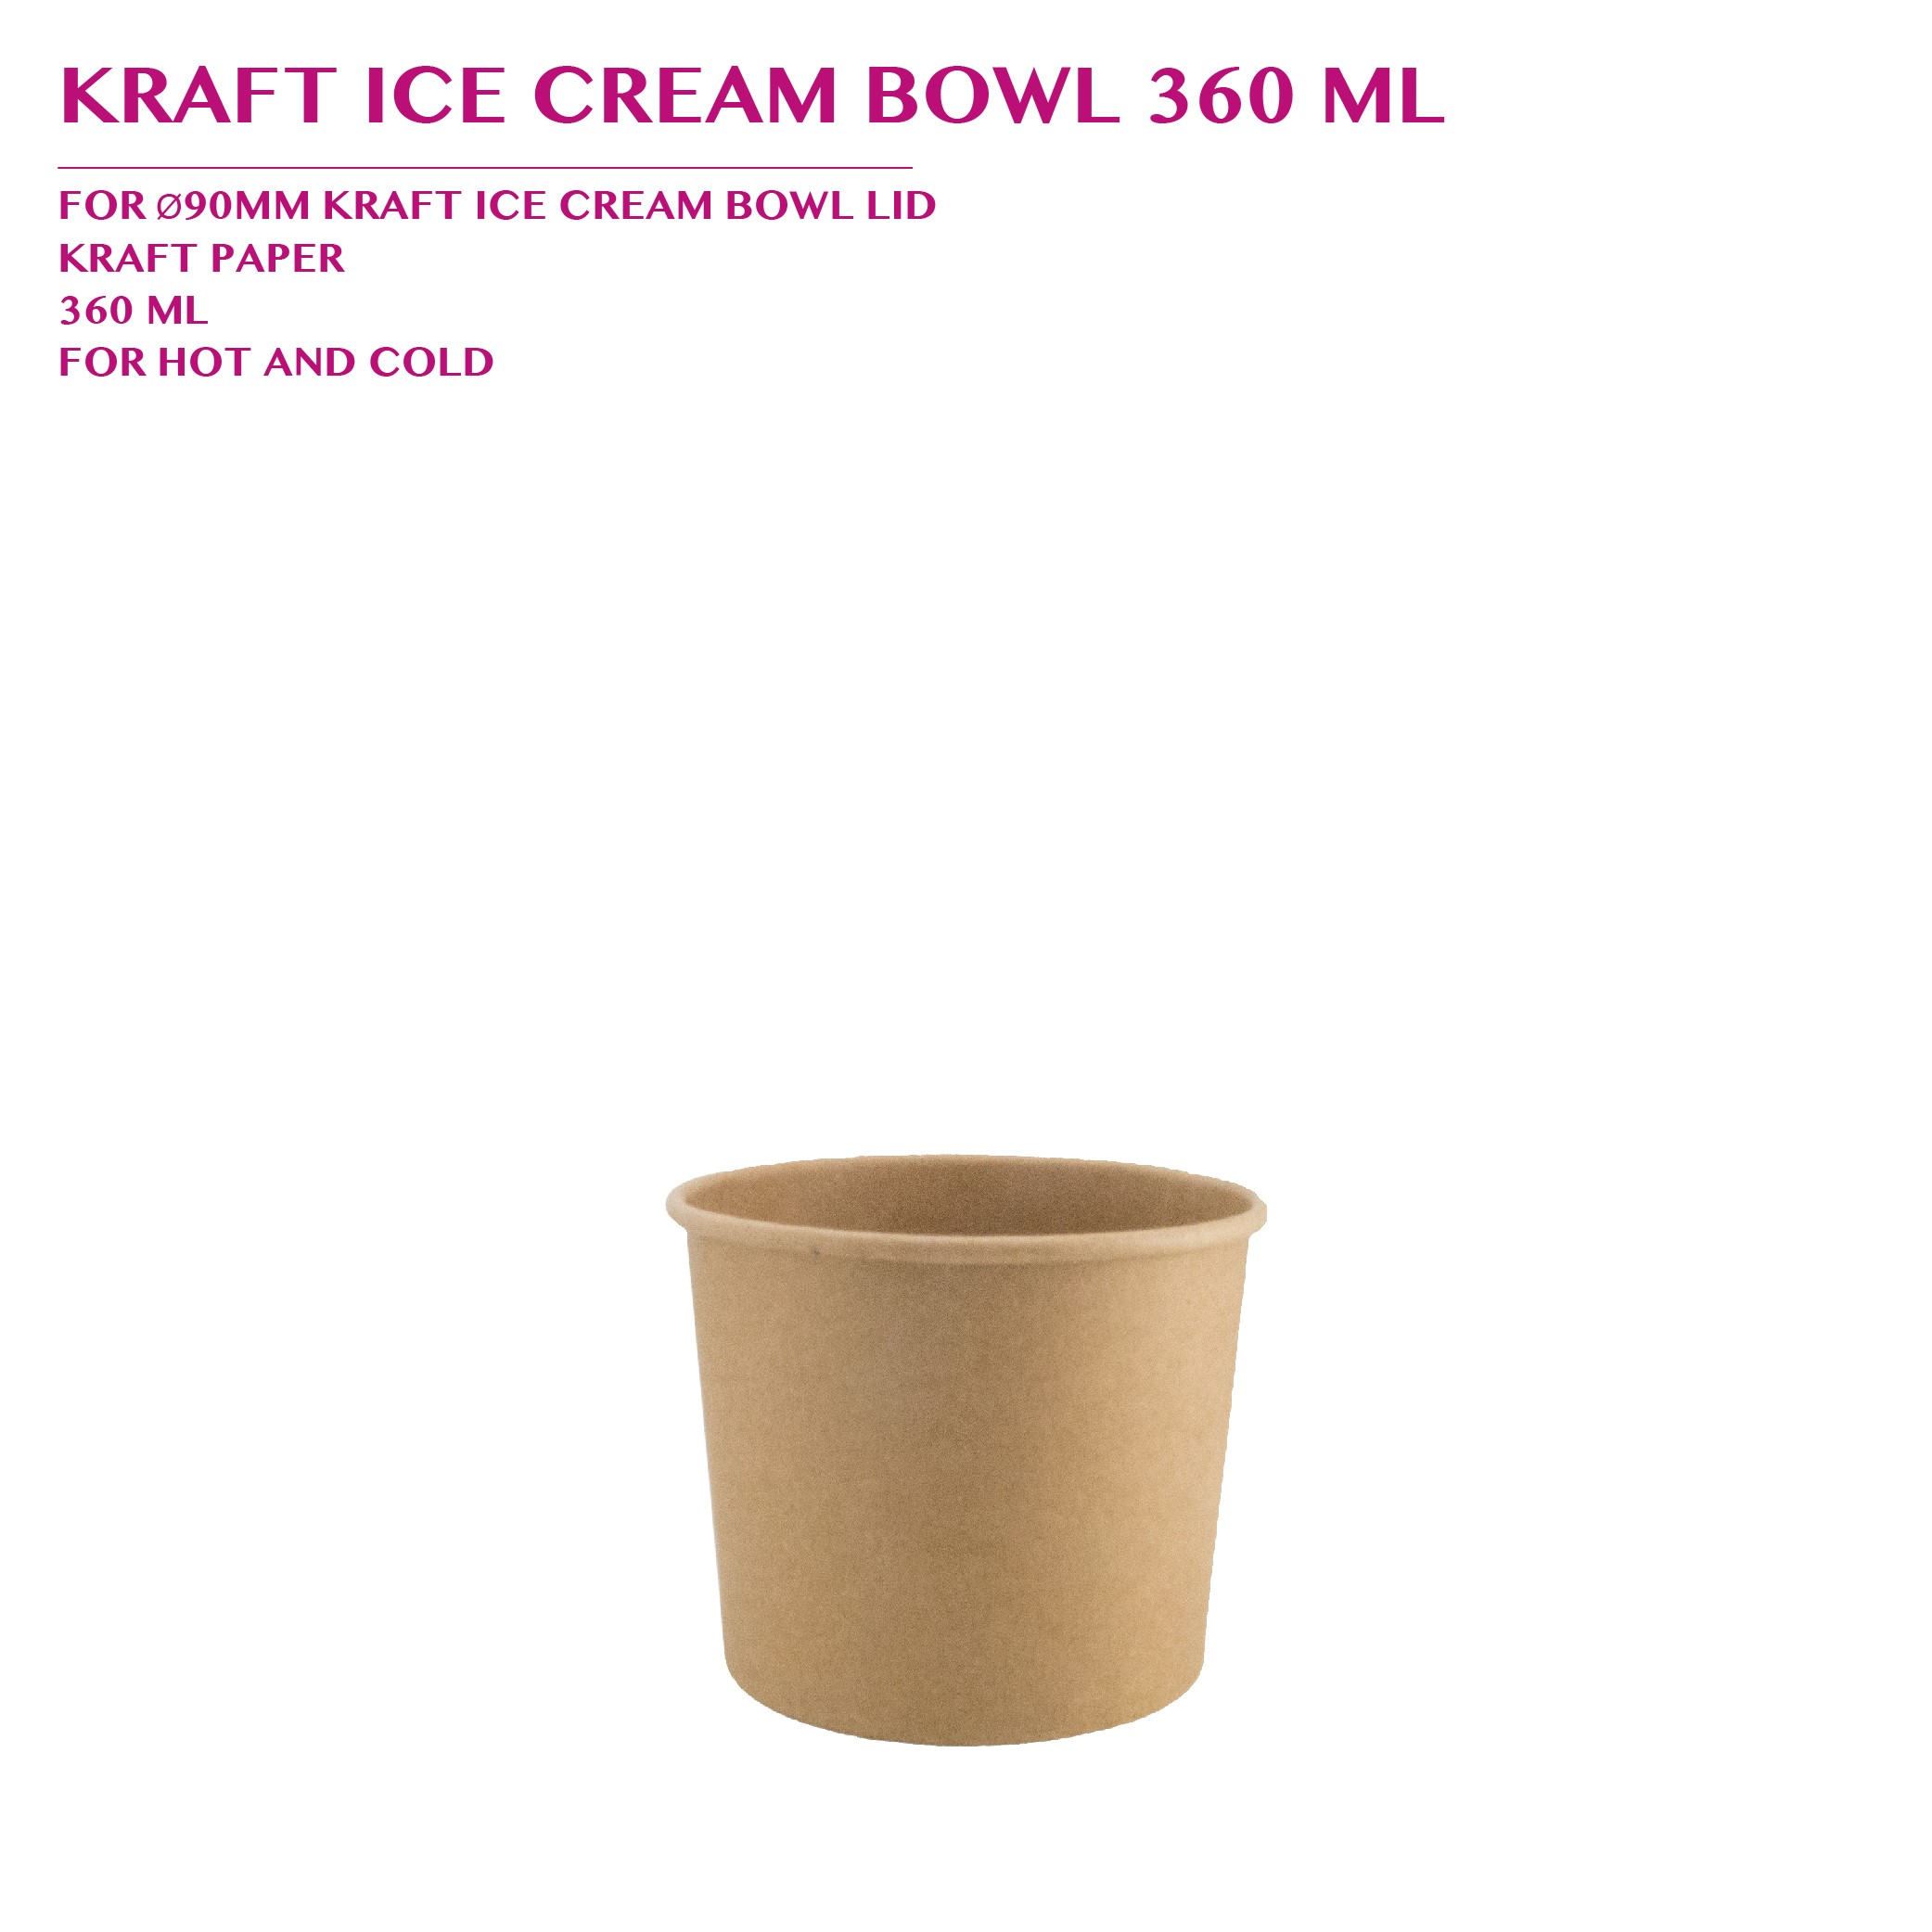 PRE-ORDER KRAFT ICE CREAM BOWL 360 ML PCS/CTN